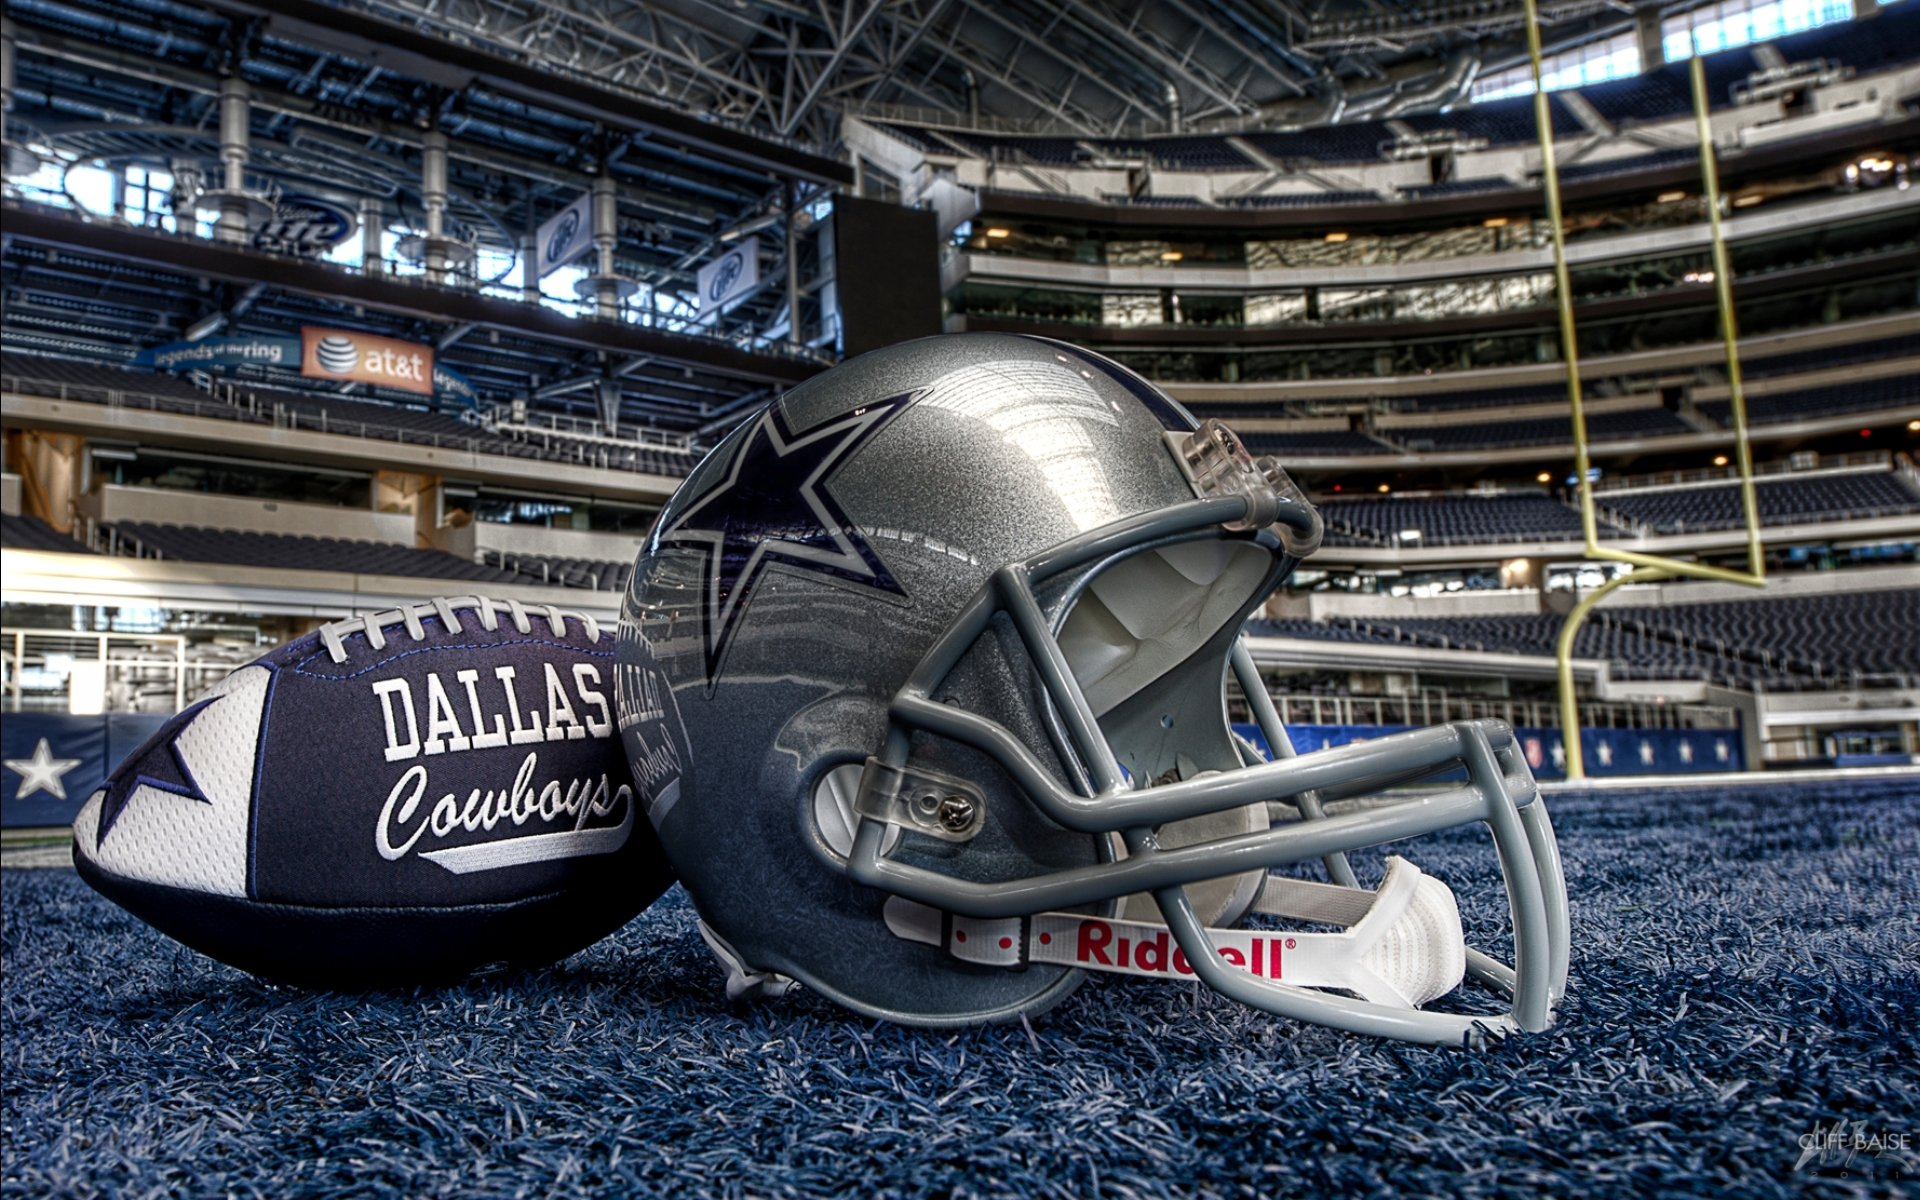 62 dallas cowboys hd wallpapers | background images - wallpaper abyss